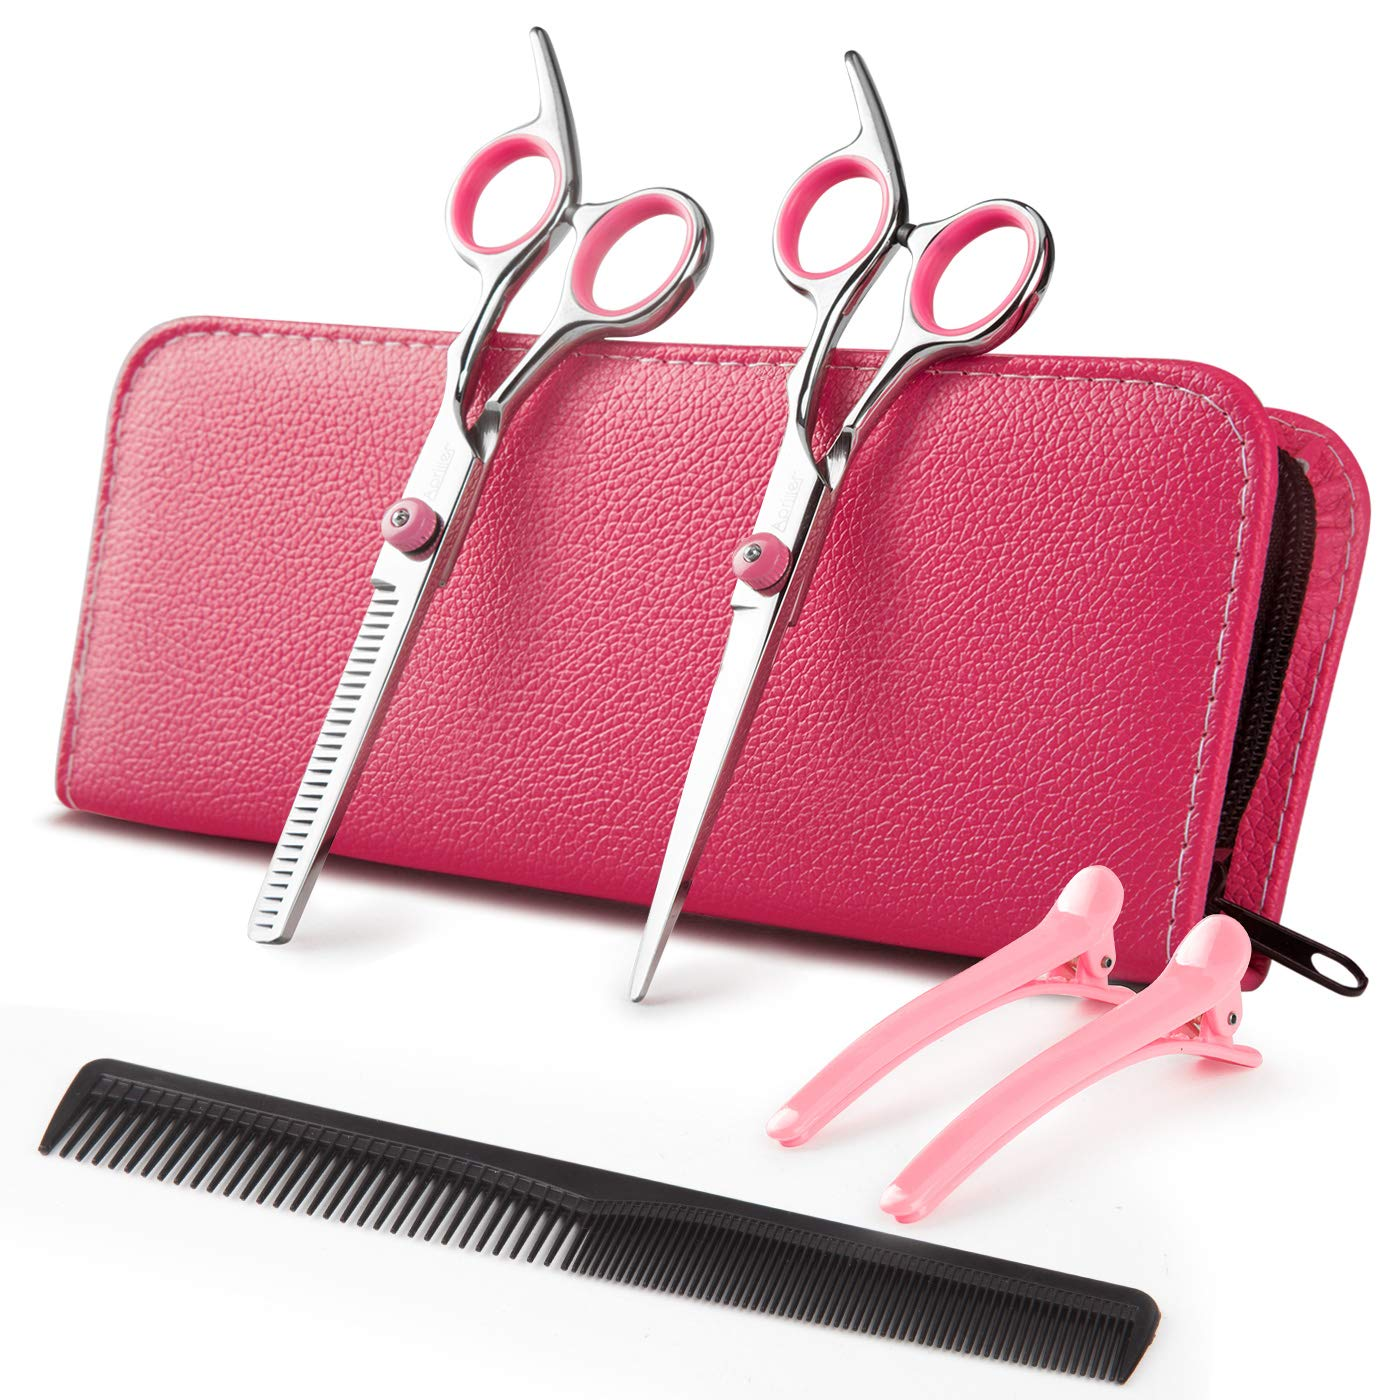 Hair Cutting Scissors, Professional Barber Hair Japanese Stainless Steel Thinning Texturing Shears Pink Sharp Hair Scissors Set by Apriller